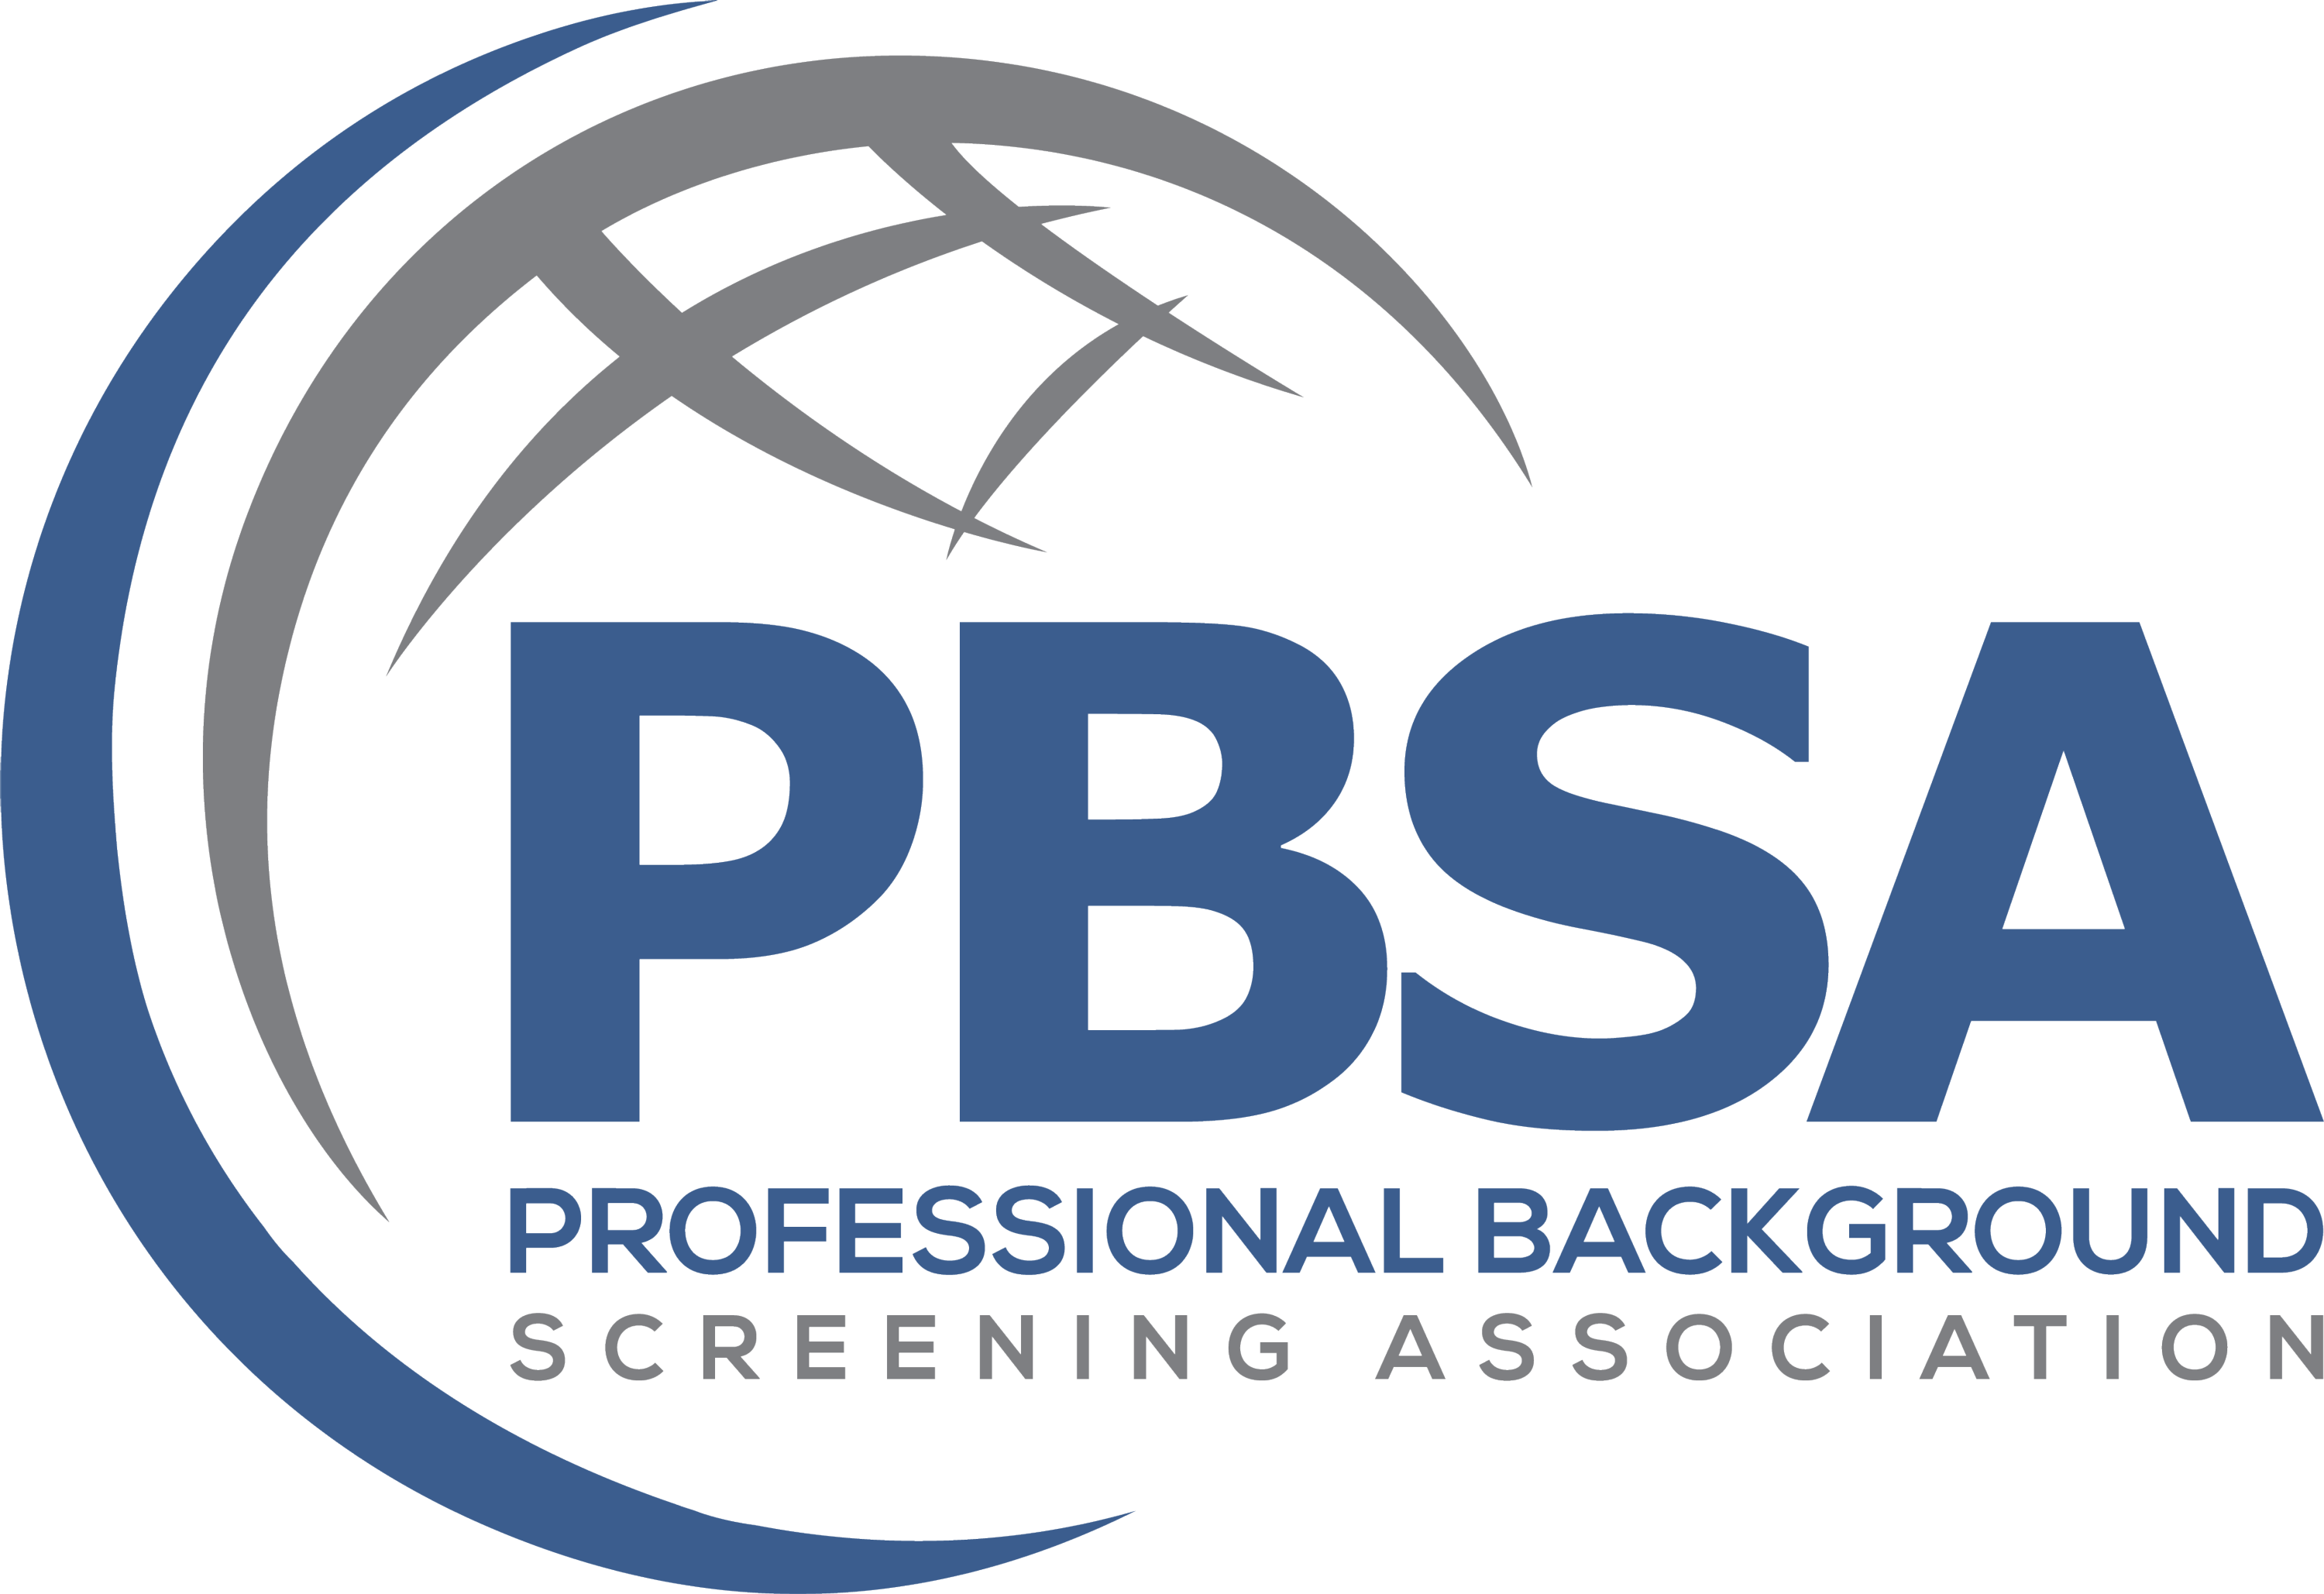 NAPBS Announces Rebrand to PBSA